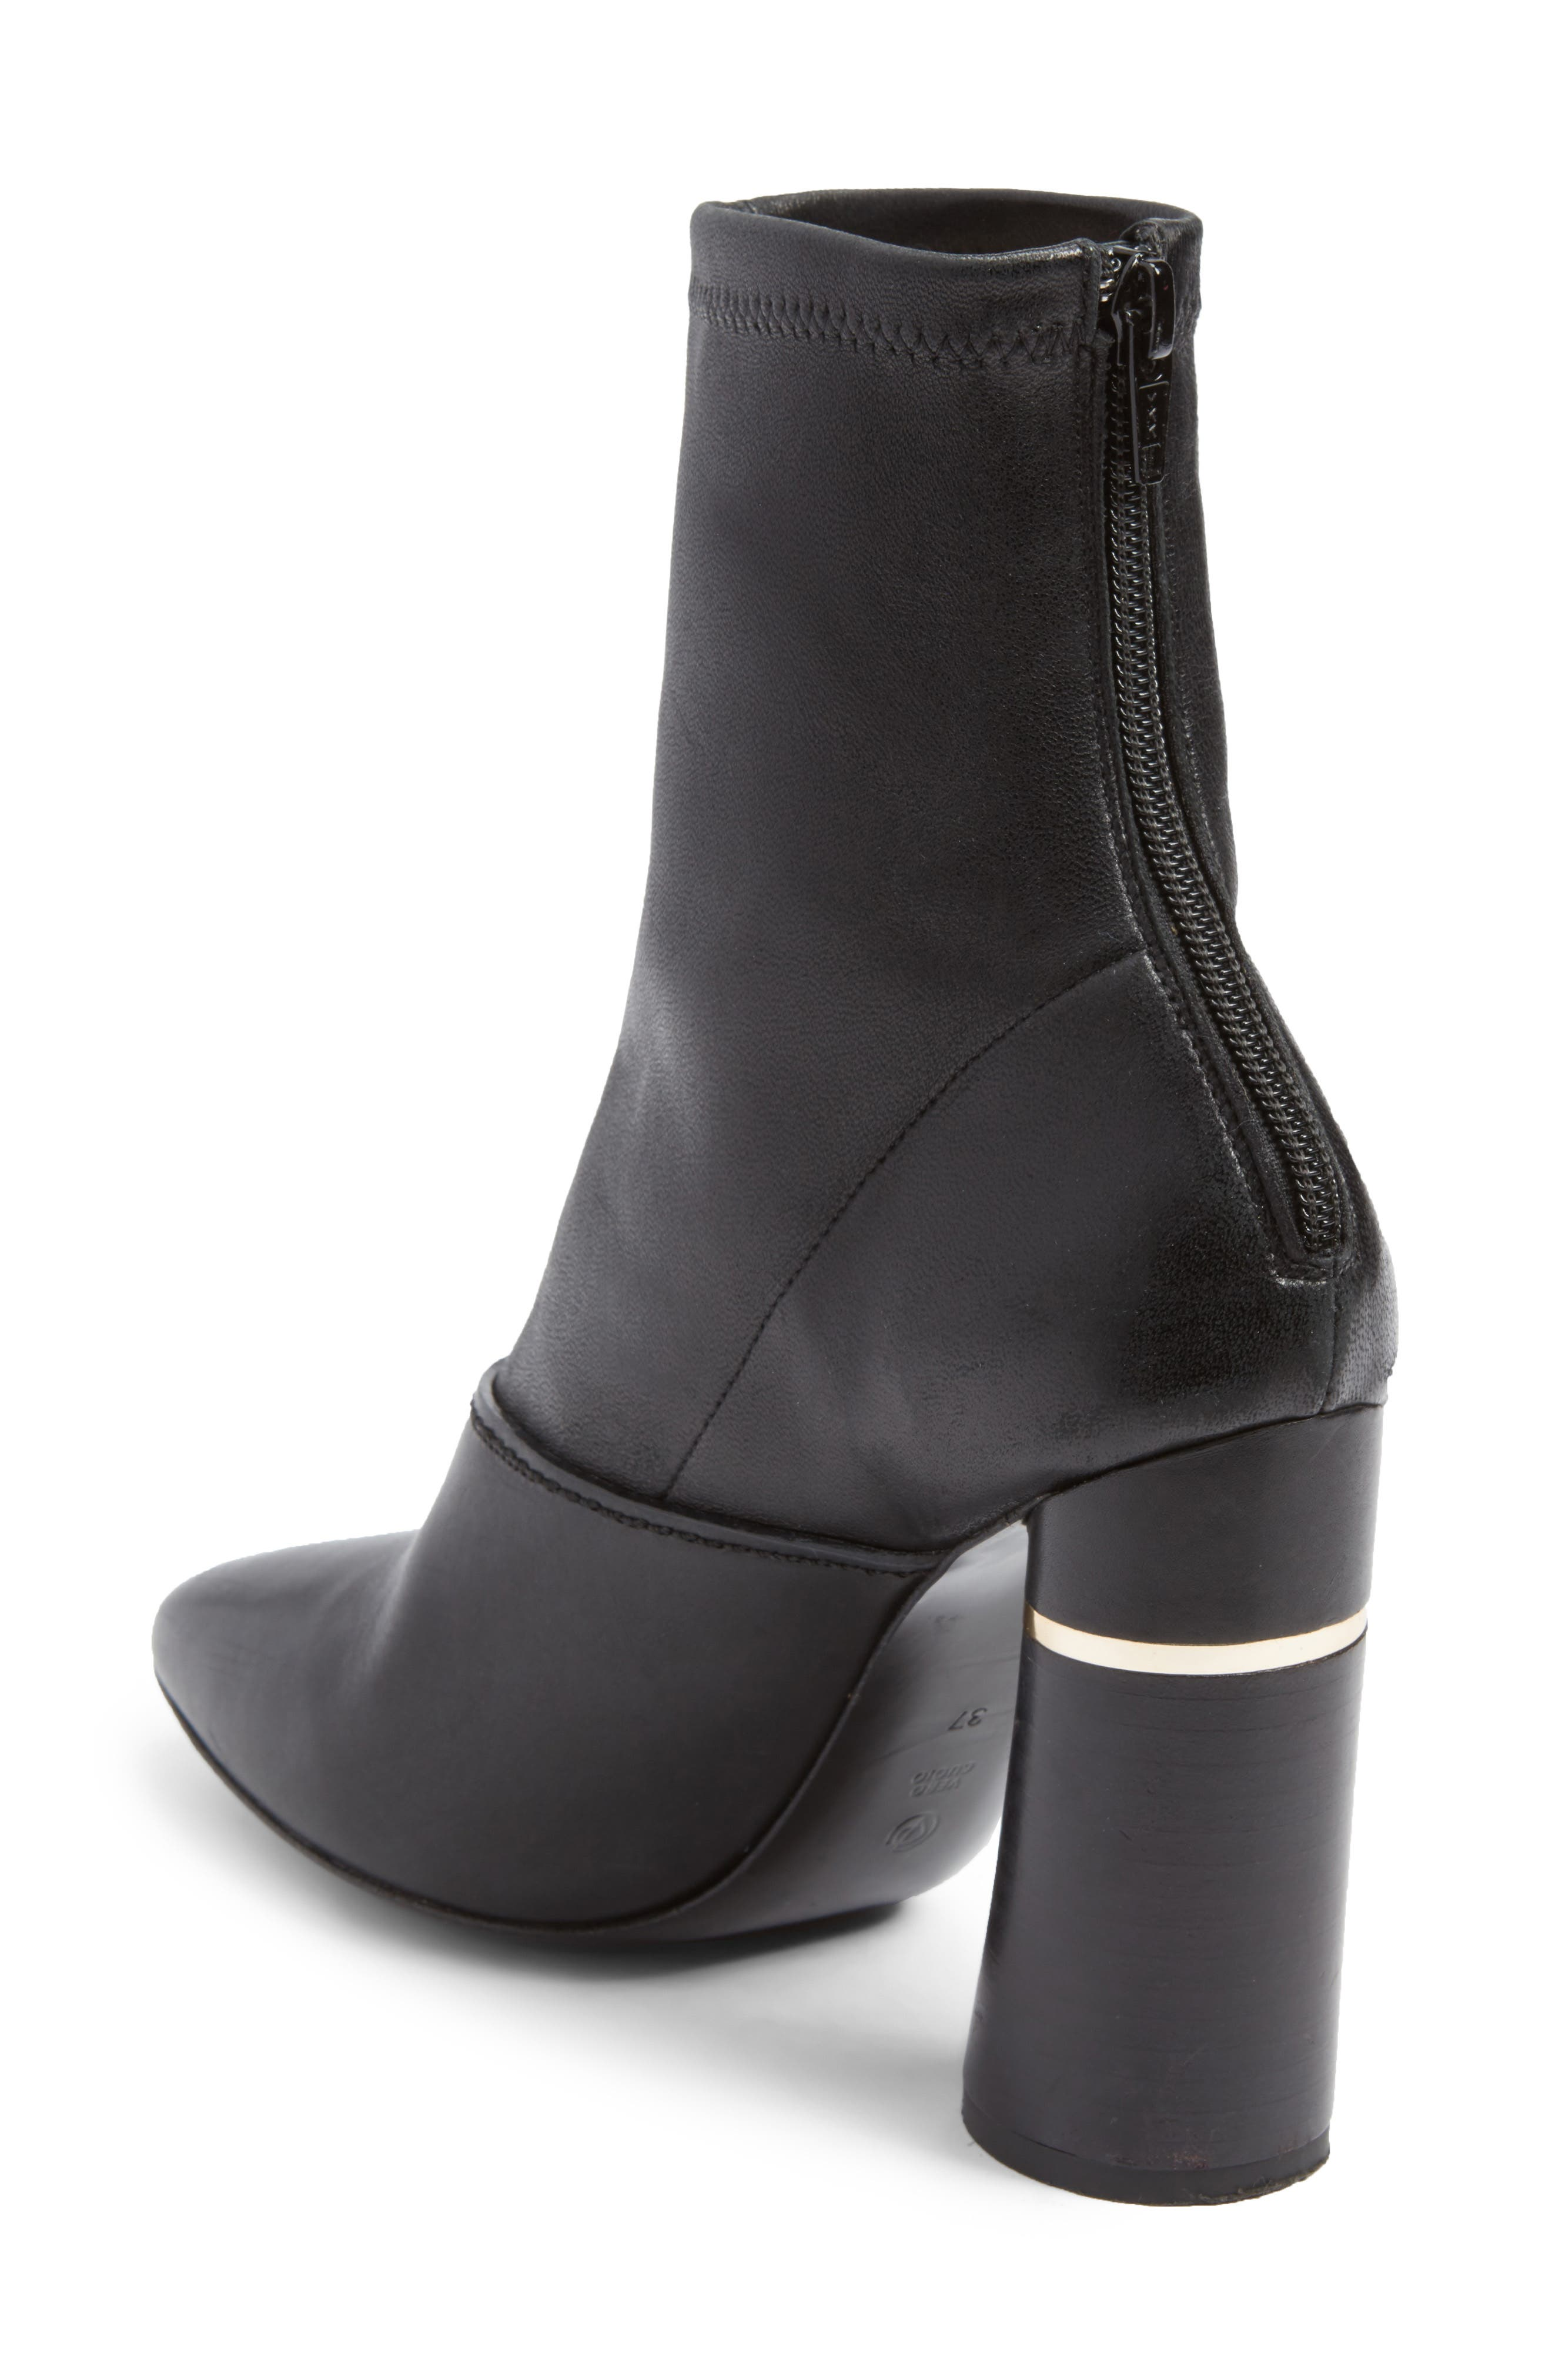 Alternate Image 2  - 3.1 Phillip Lim Kyoto Leather Bootie (Women)